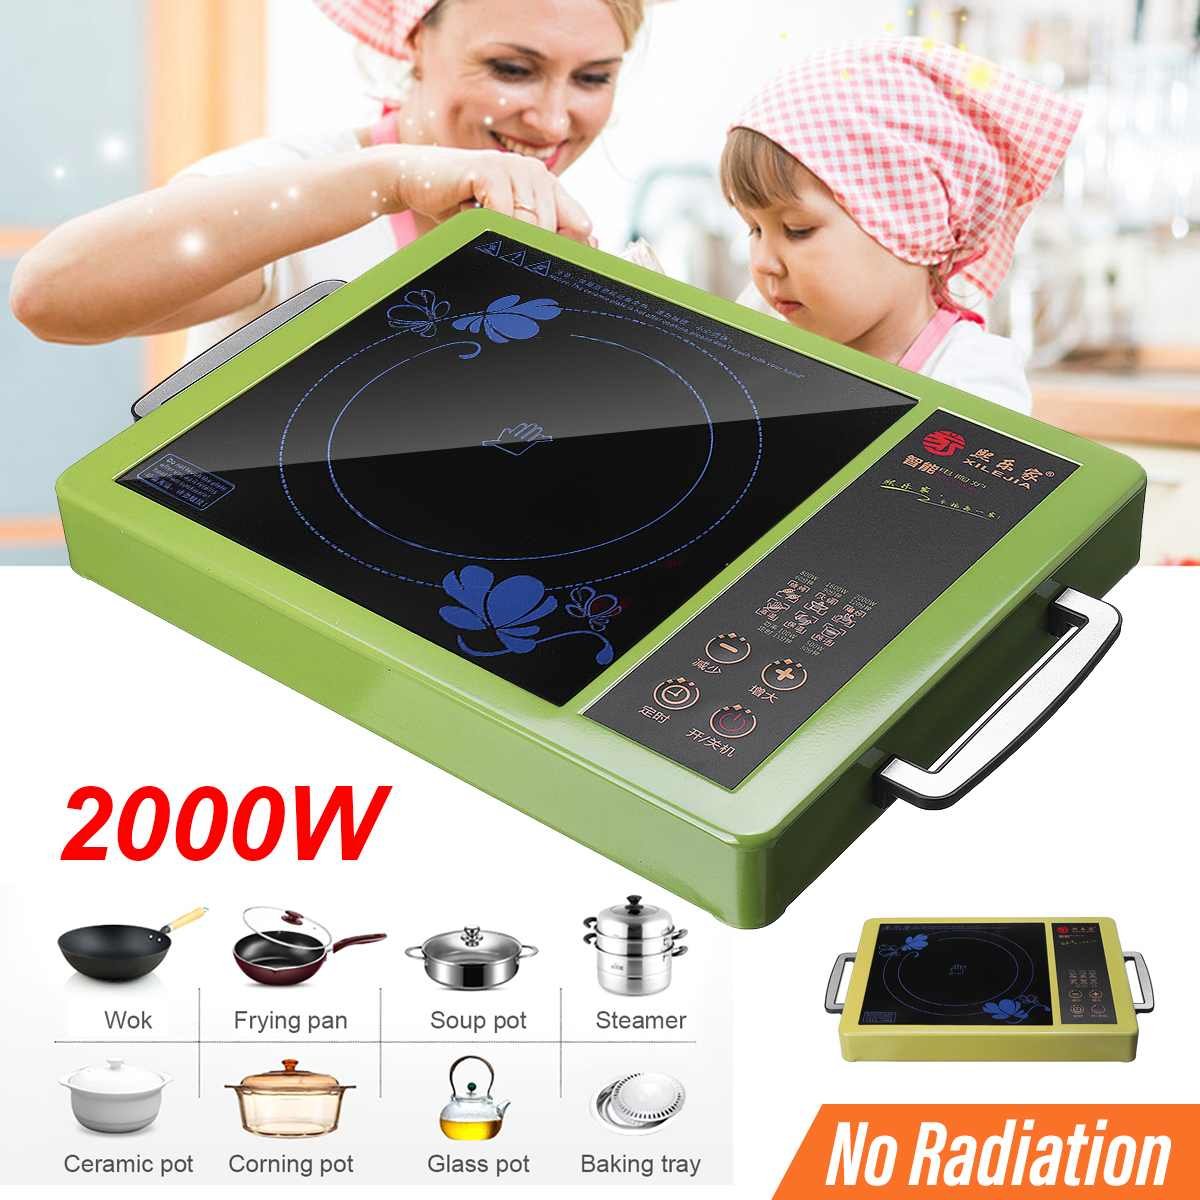 2000W Electrical Magnetic Waterproof Induction Cooker Hob Oven Hot Pot Stove With Timer Ceramic Heating Furnace Cooktop Plate